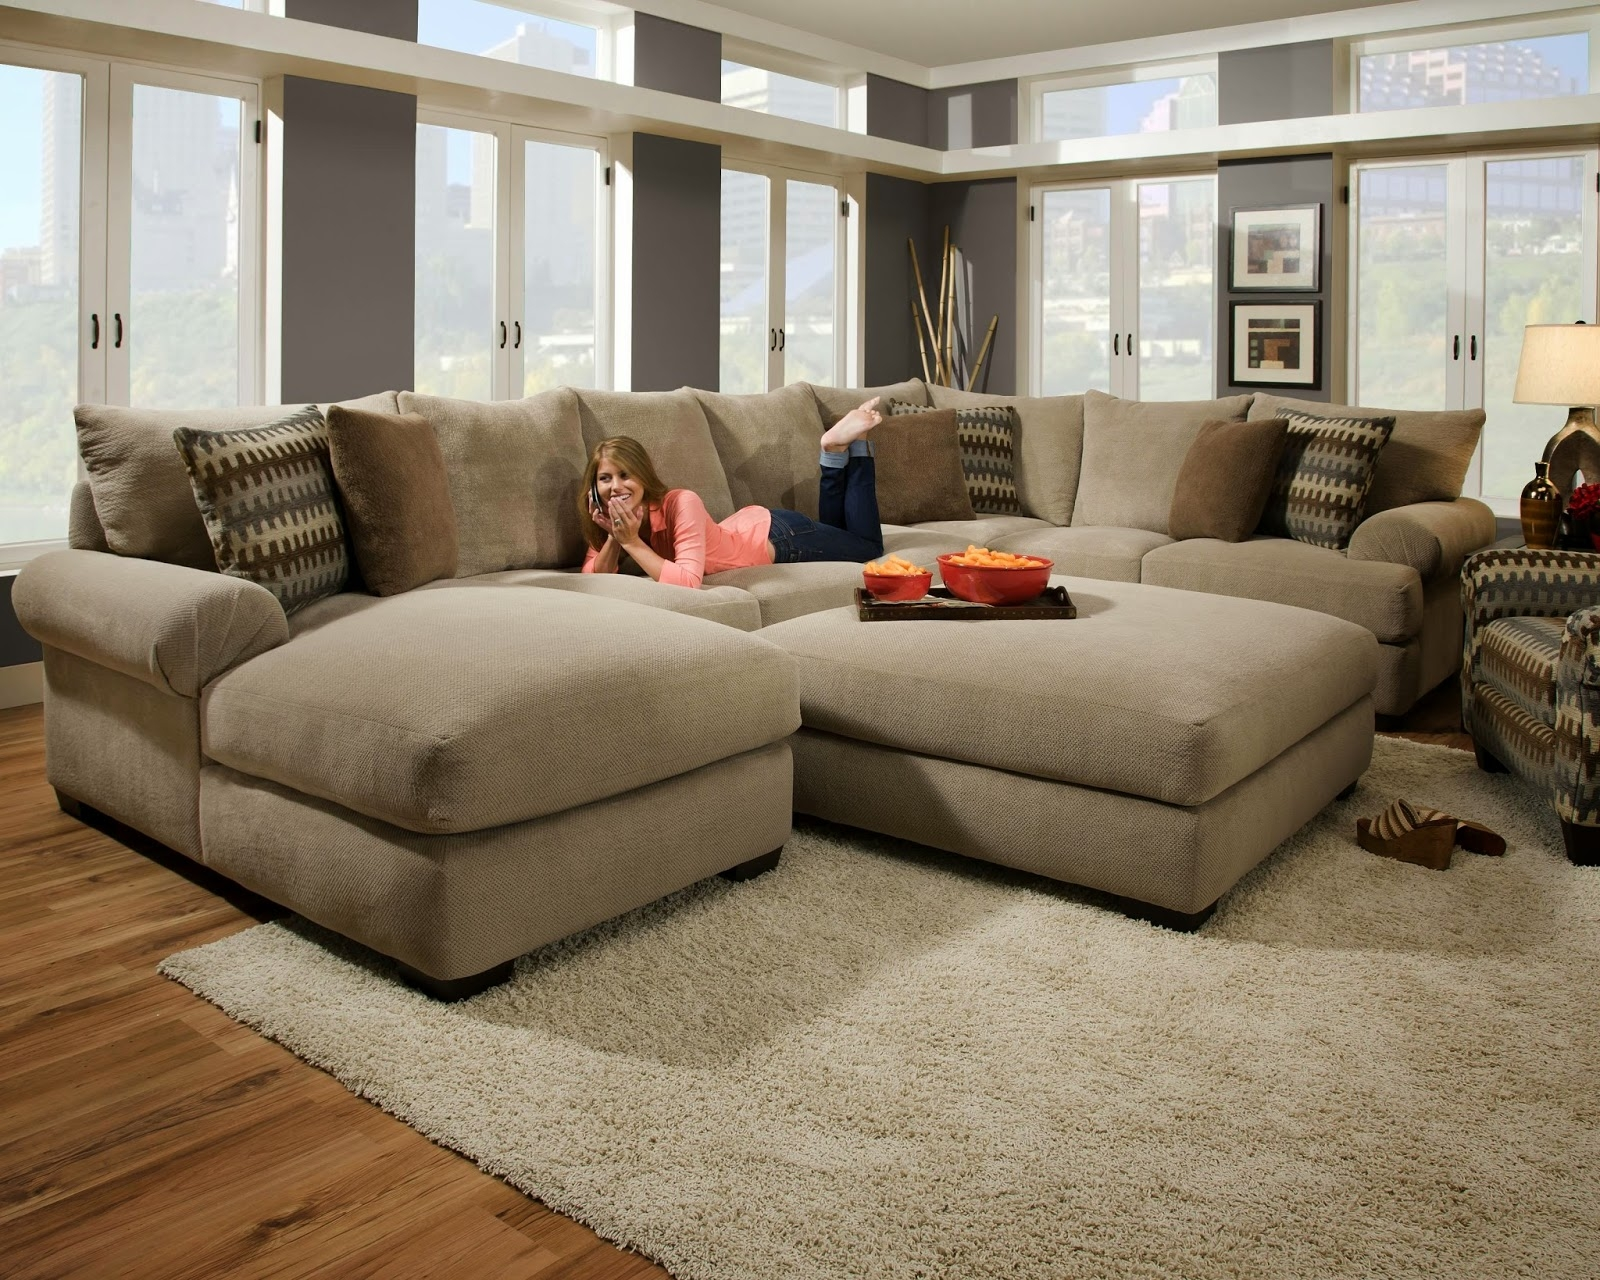 microfiber sectional sofa with ottoman